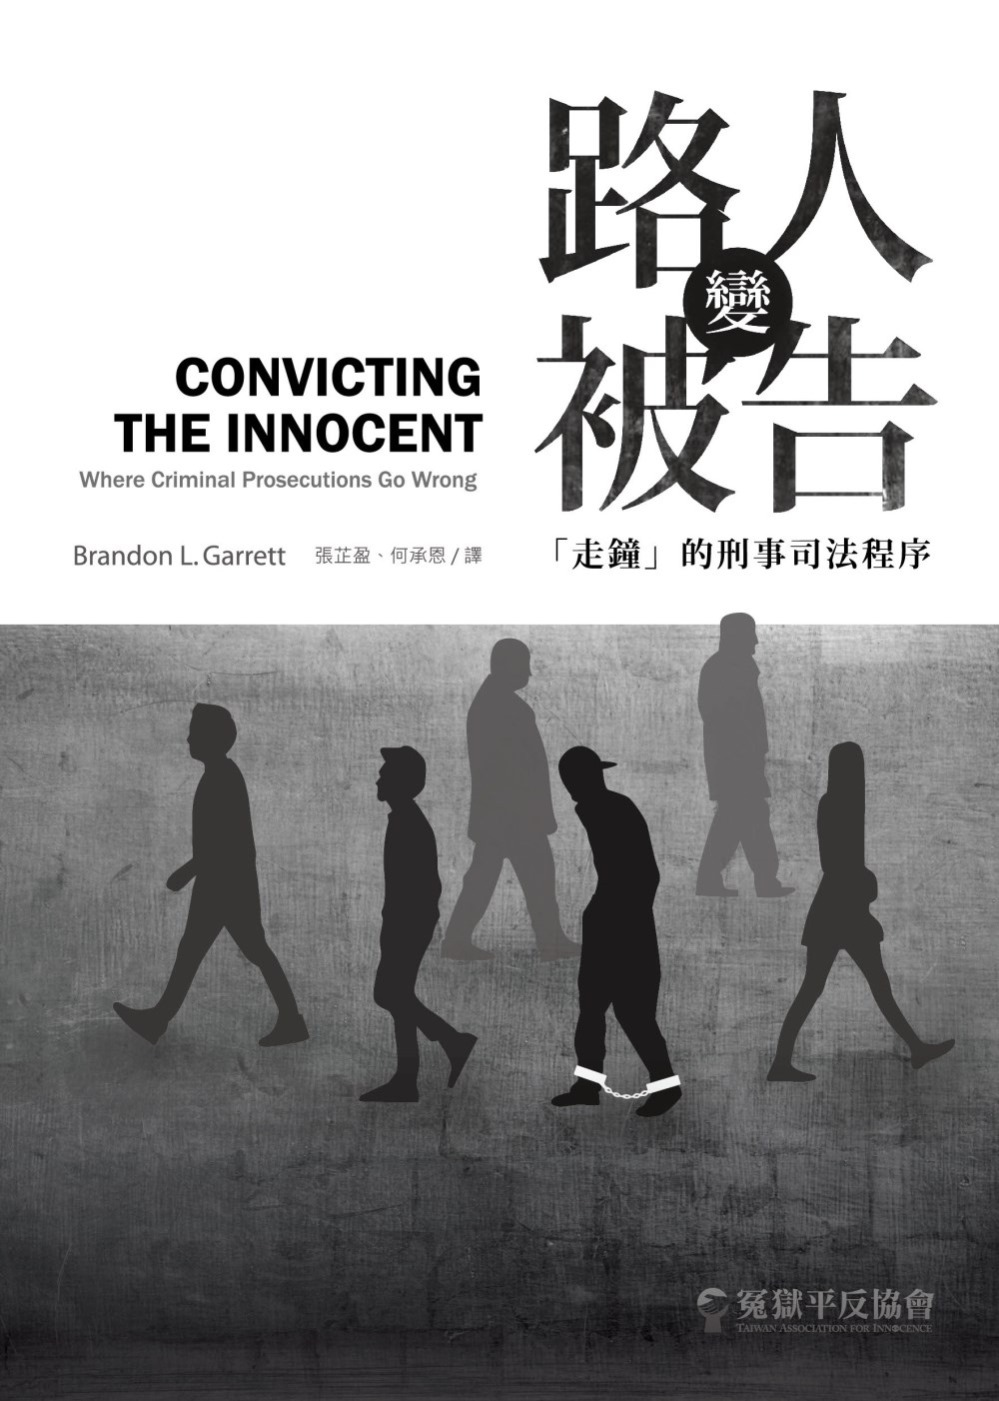 路人變被告:「走鐘」的刑事司法程序/Convicting the Innocent-Where Criminal Prosecutions Go Wrong